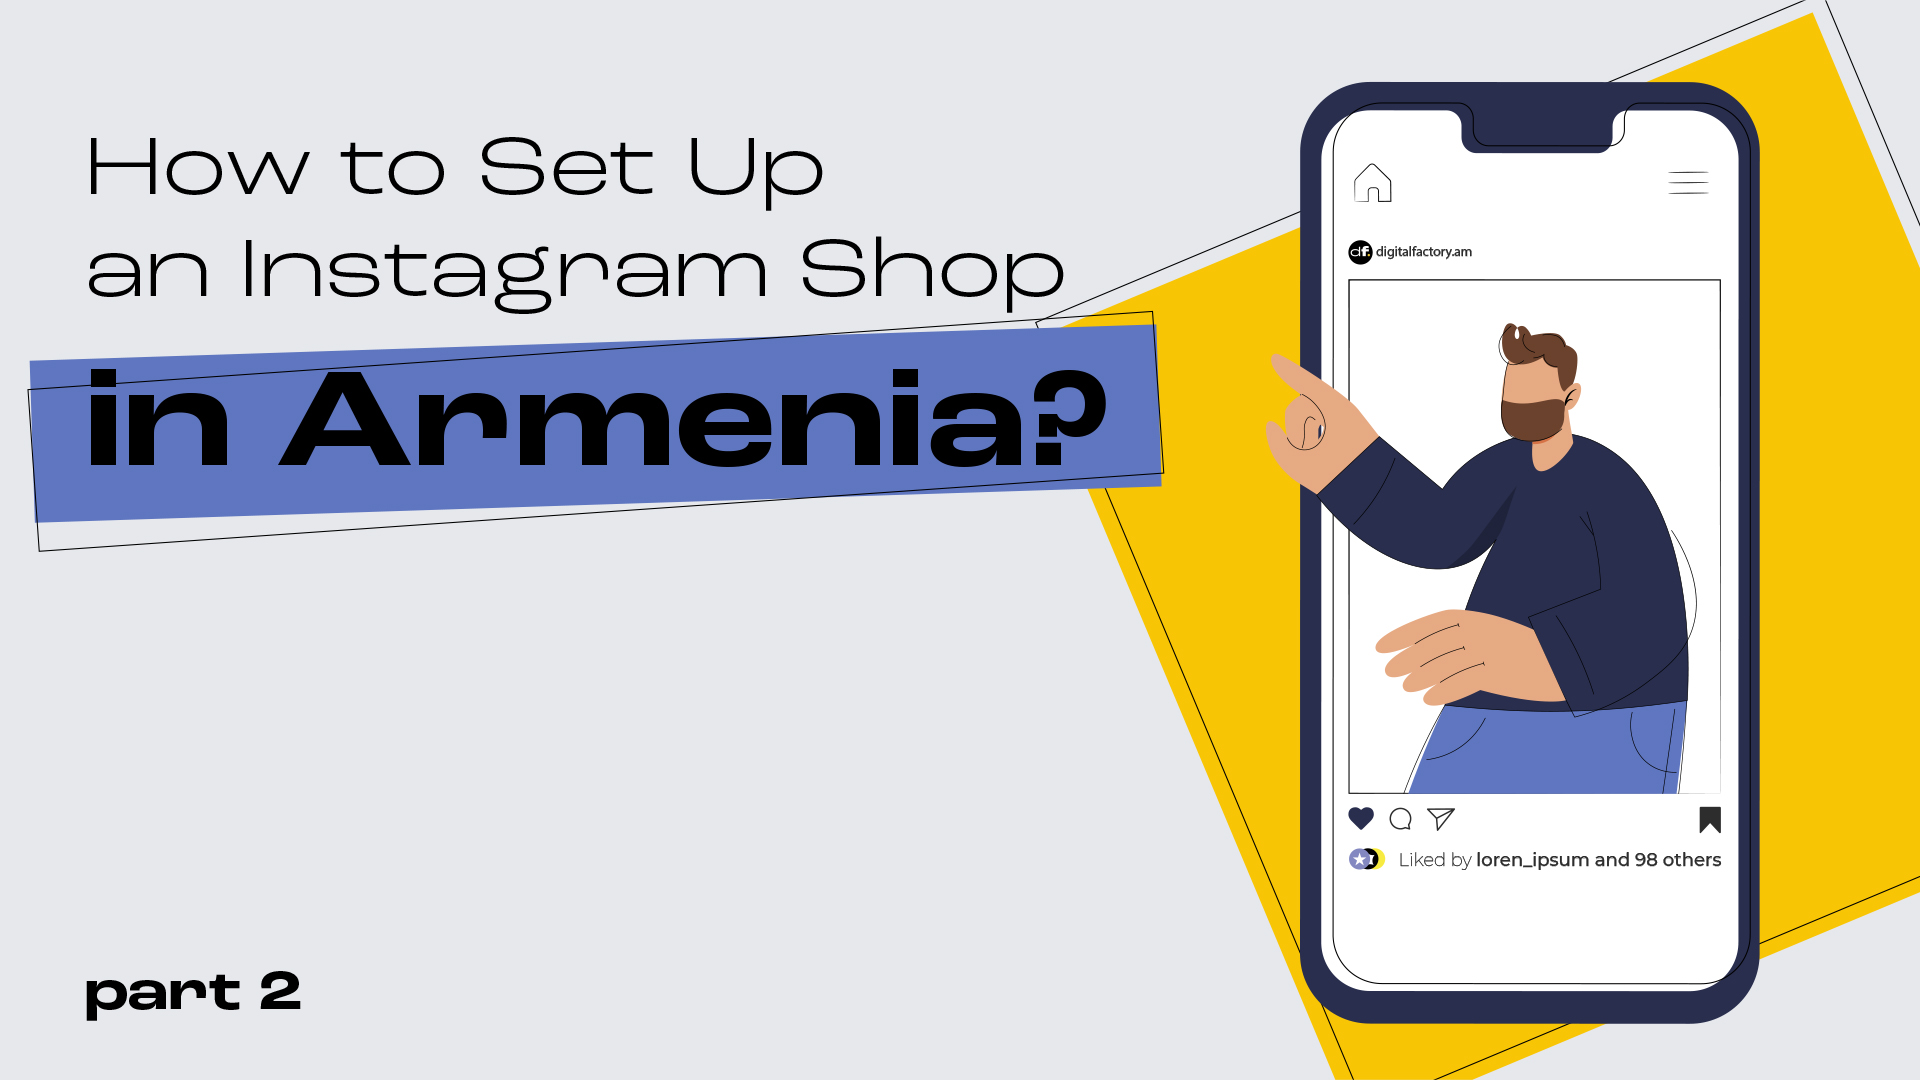 How to Set up an Instagram Shop in Armenia? - Part 2